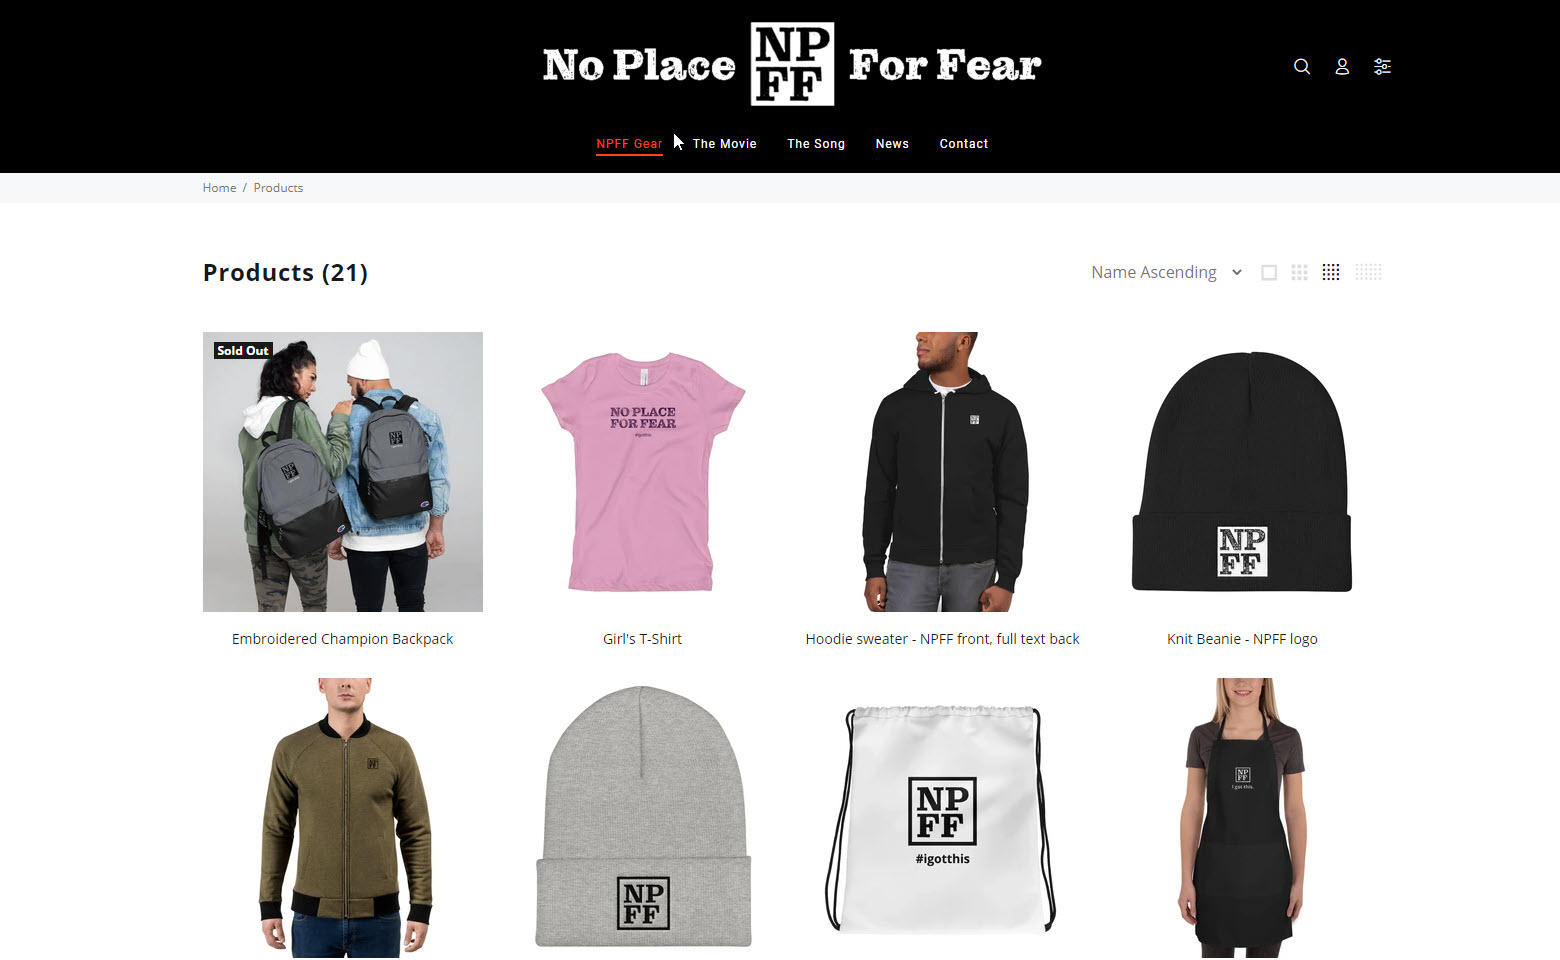 NPFF merchandise site developed and managed by Virbion